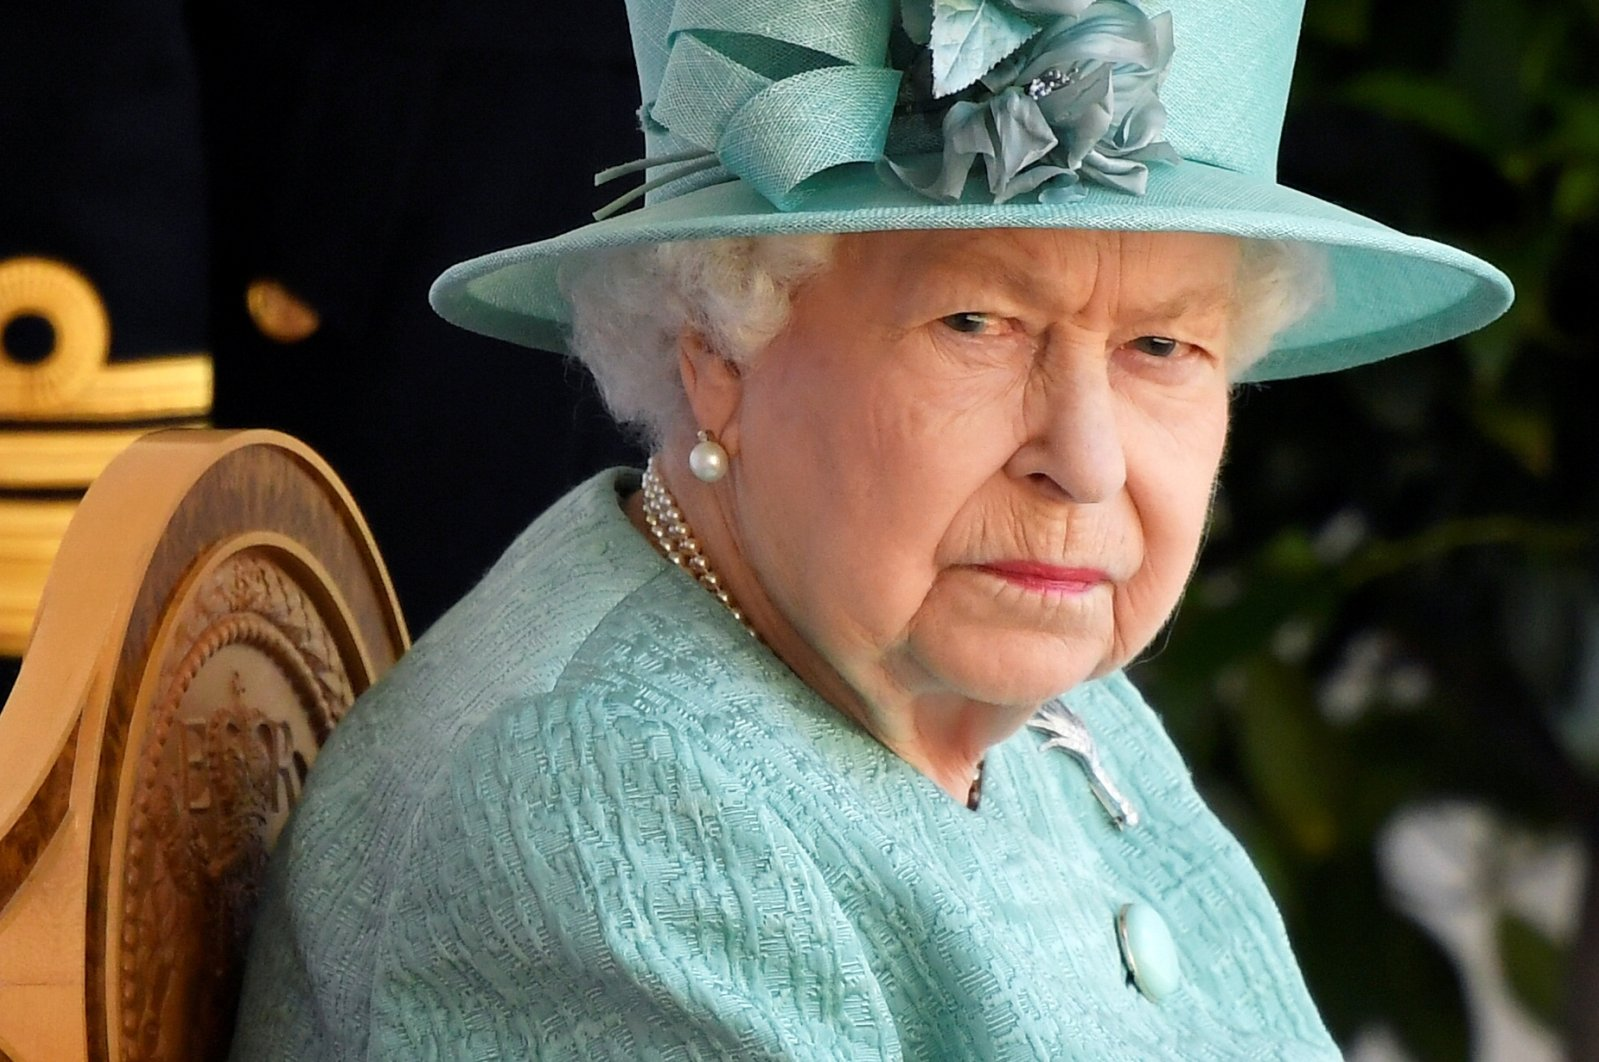 Britain's Queen Elizabeth attends a ceremony marking her birthday at Windsor Castle in Windsor, Britain, June 13, 2020. (Reuters Photo)